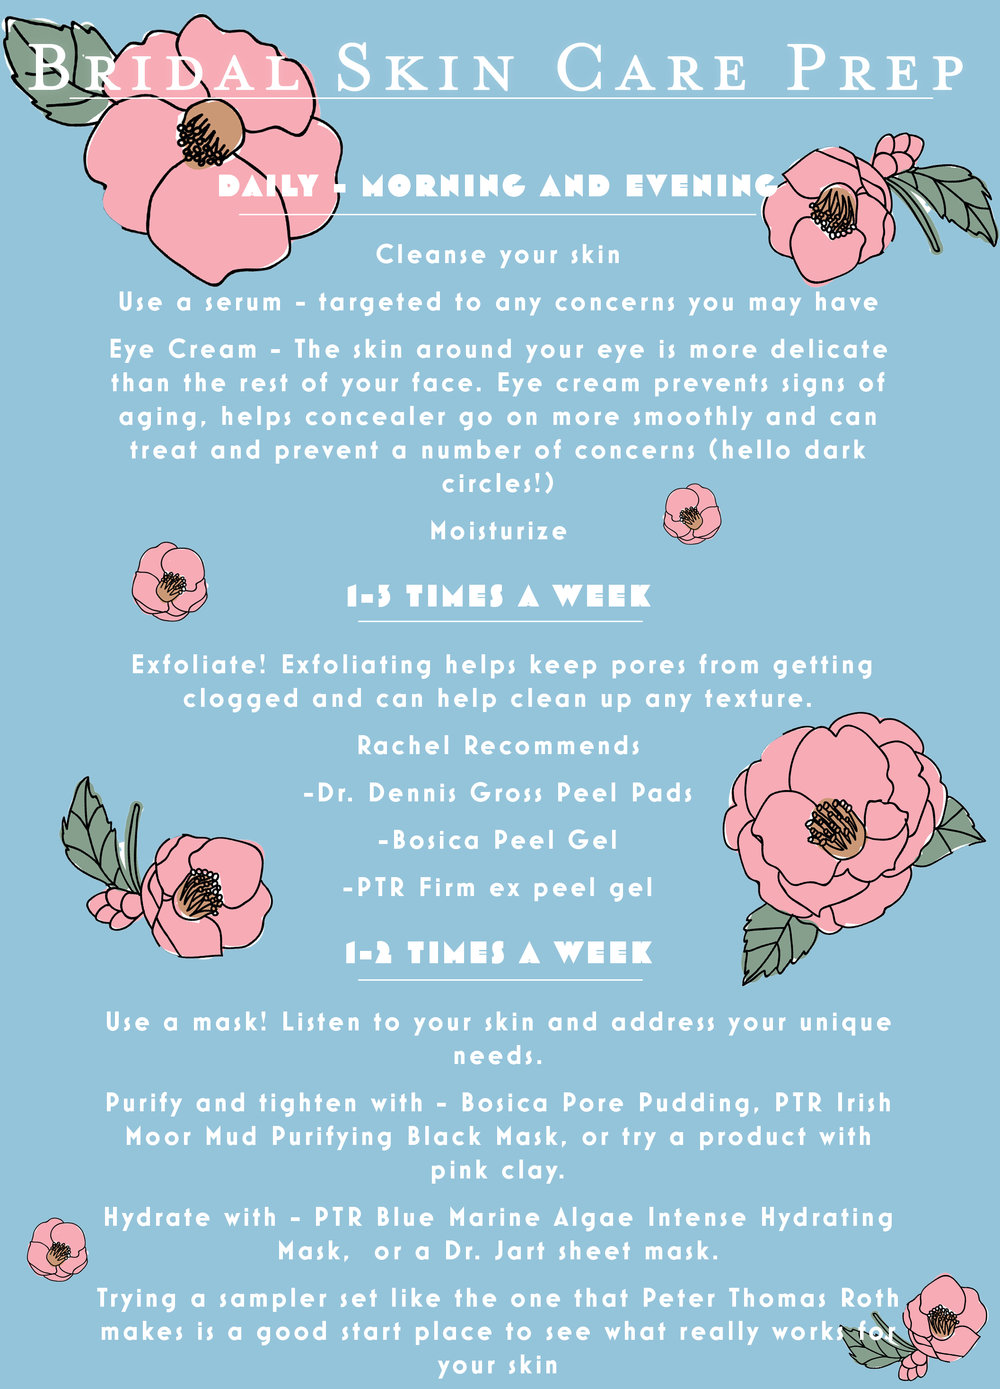 How to Prepare Your Skin for a Wedding